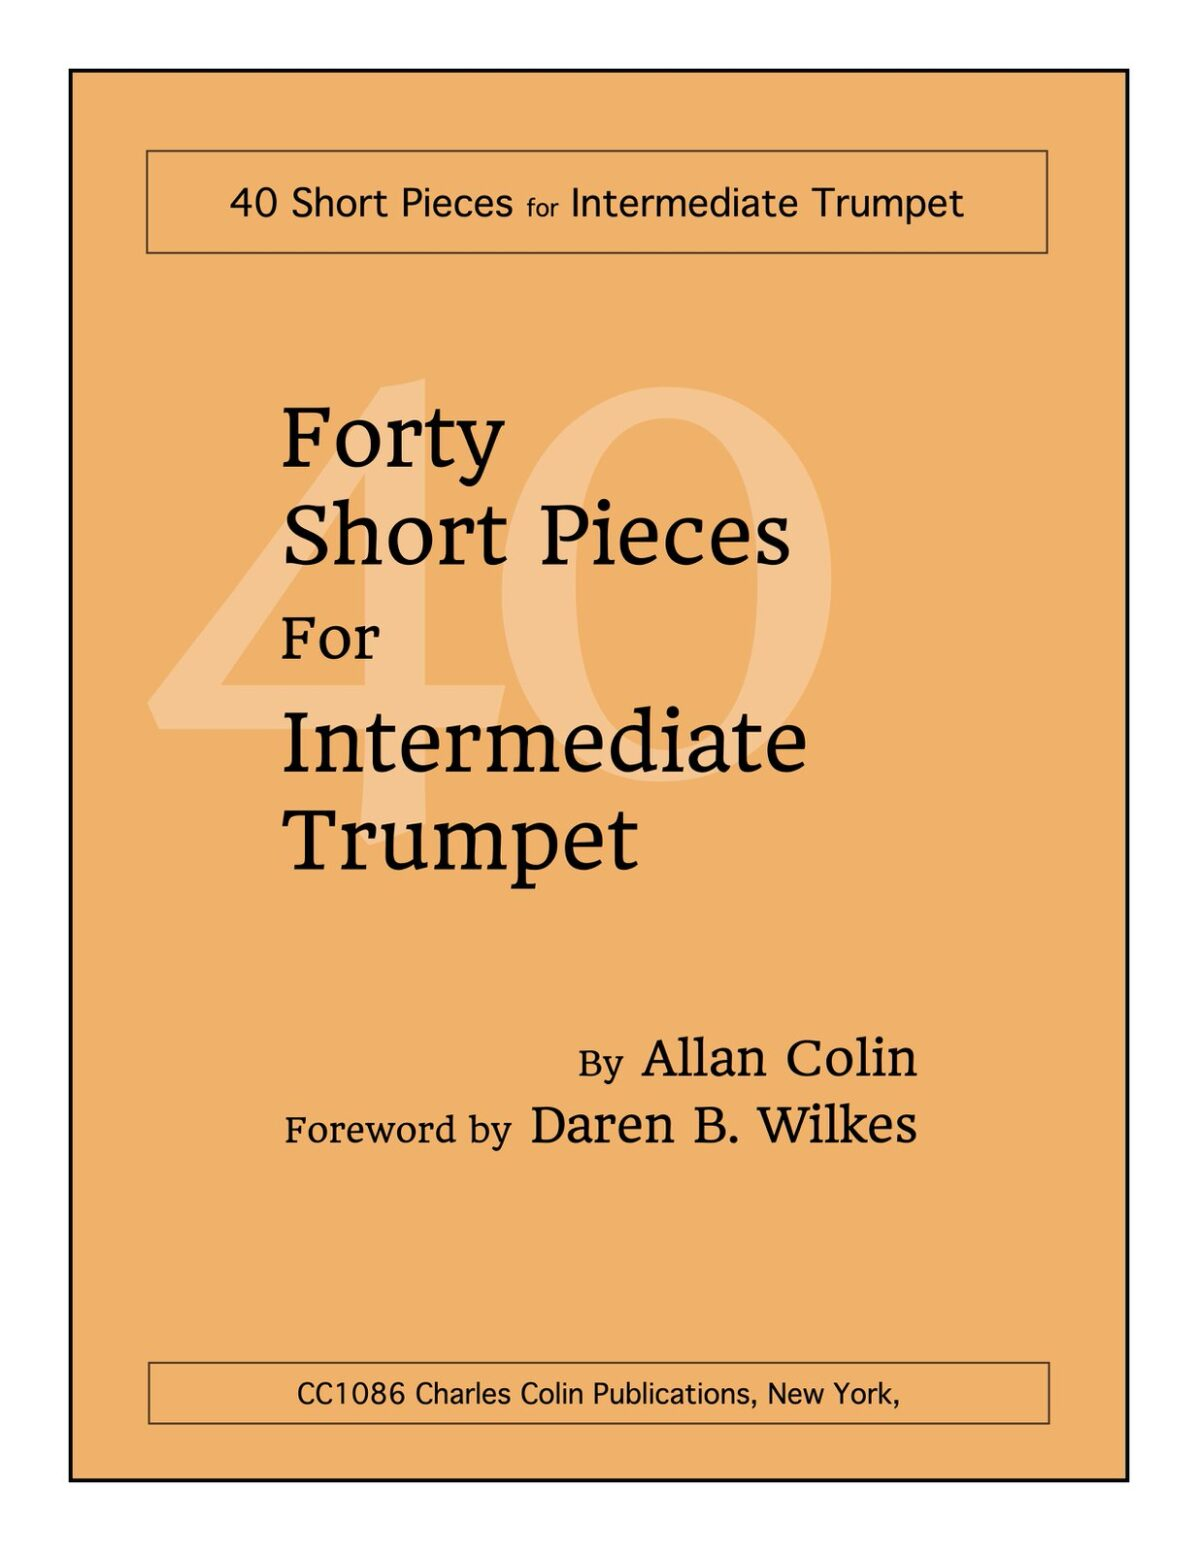 Colin, 40 Short Pieces for Intermediate Trumpet-p01